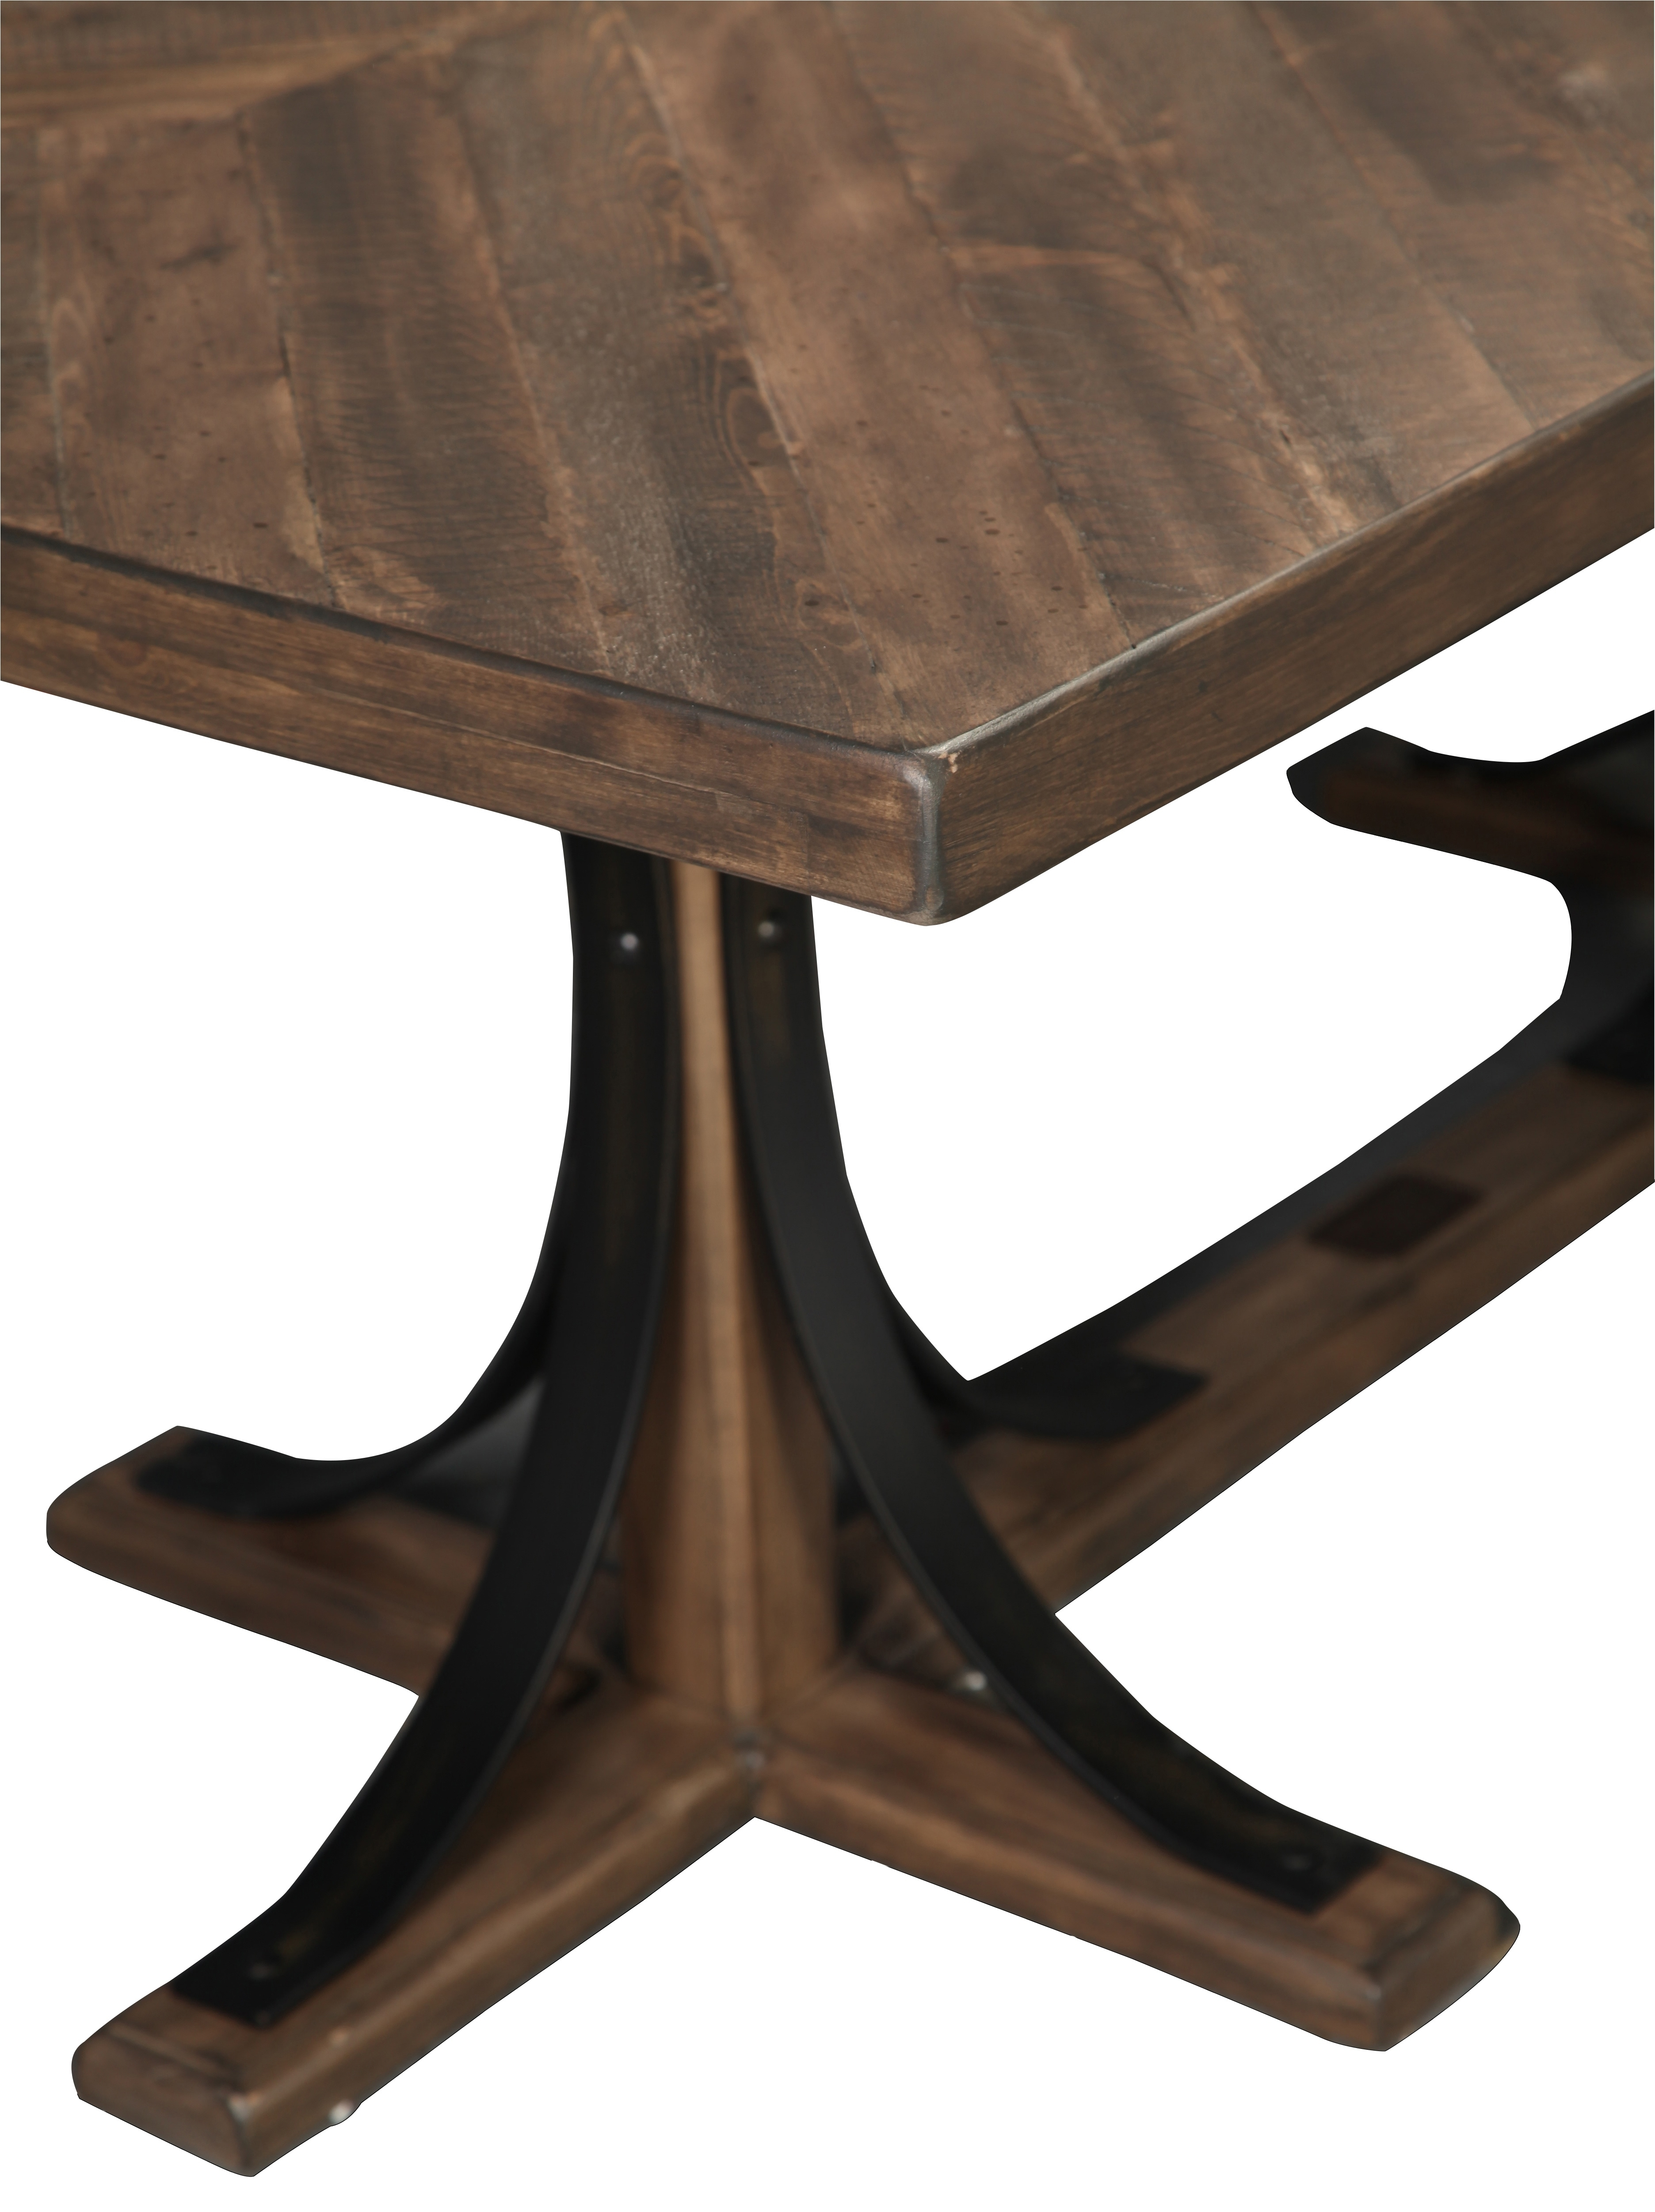 Magnolia Home Traditional Iron Trestle Table | Throughout Recent Magnolia Home Shop Floor Dining Tables With Iron Trestle (Photo 5 of 20)